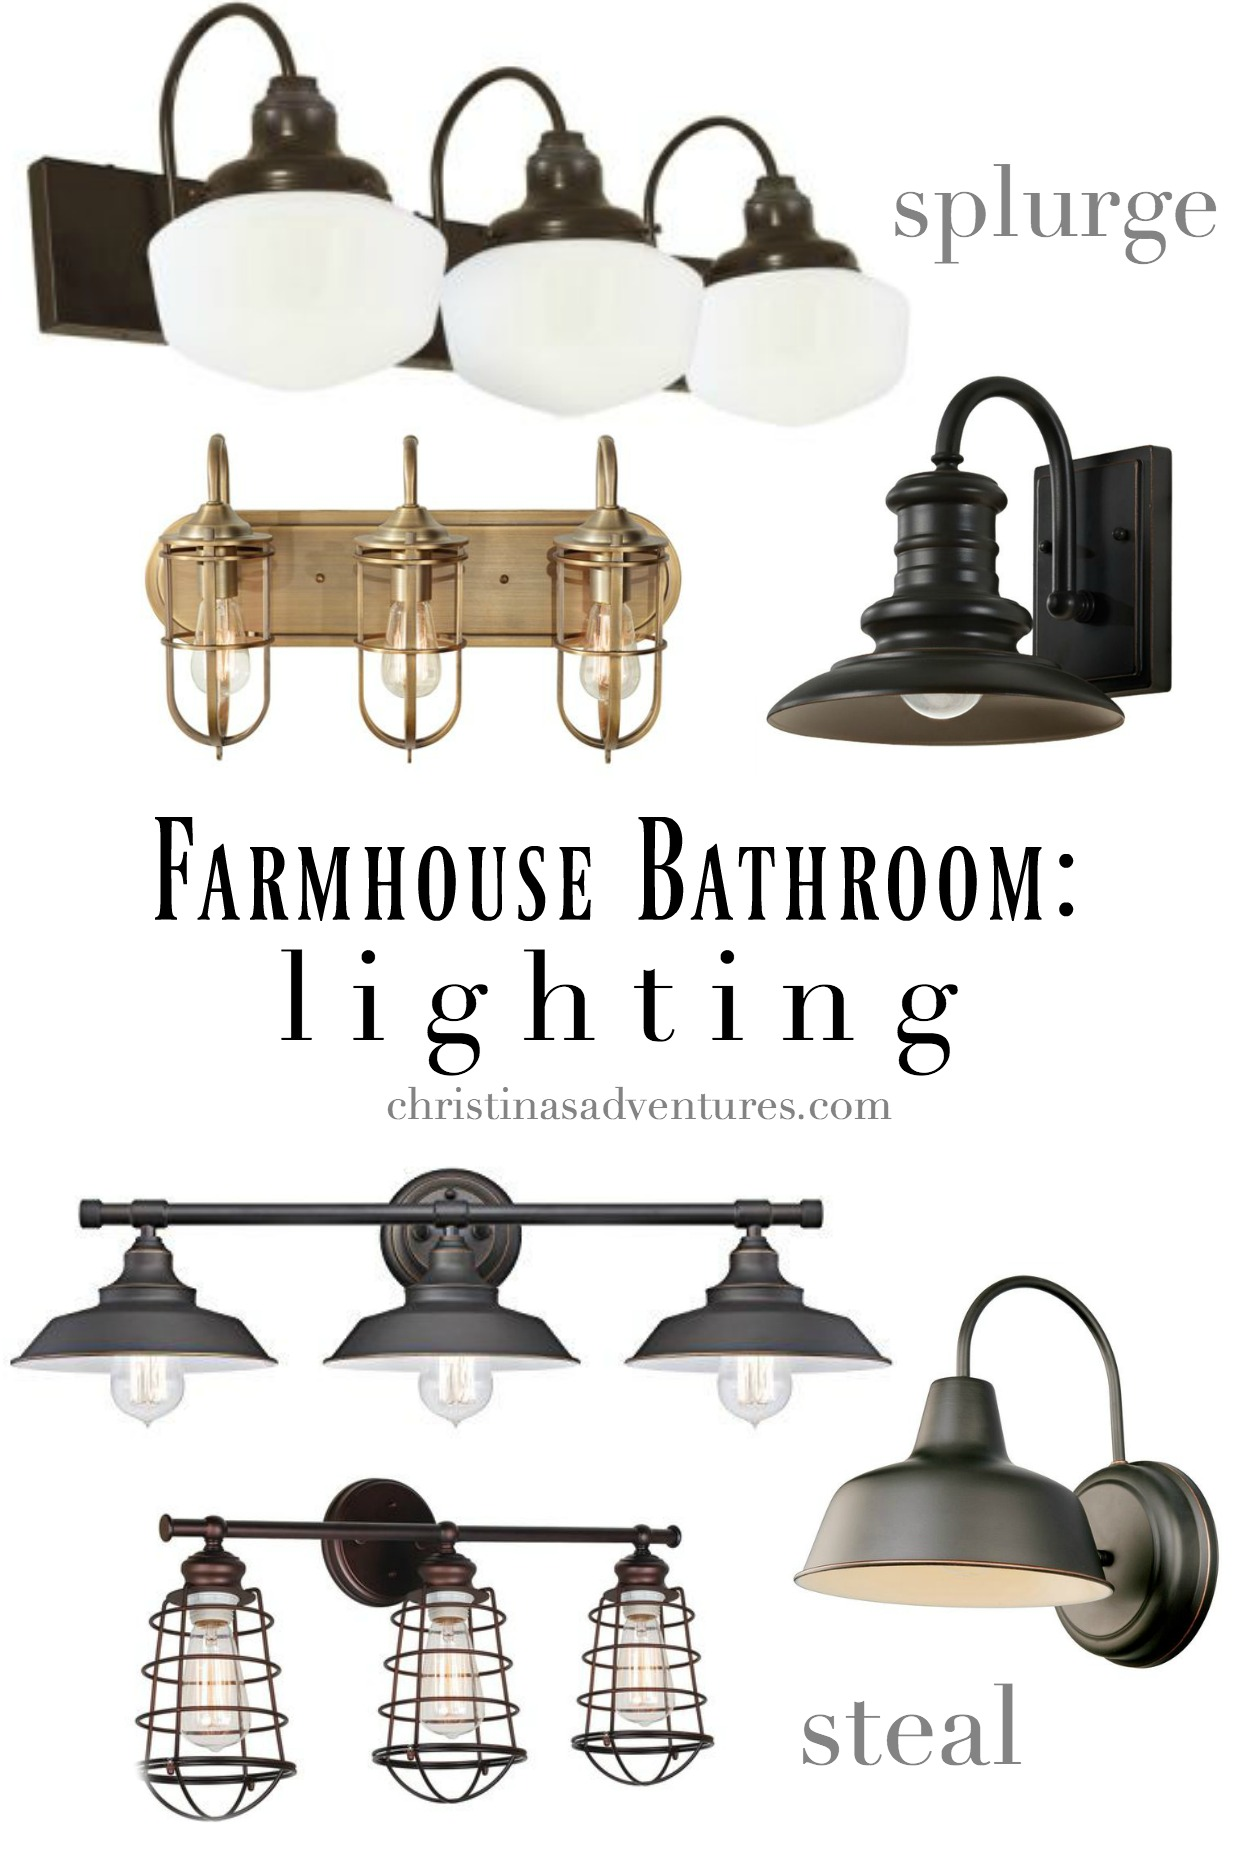 Farmhouse Bathroom Design - Christinas Adventures